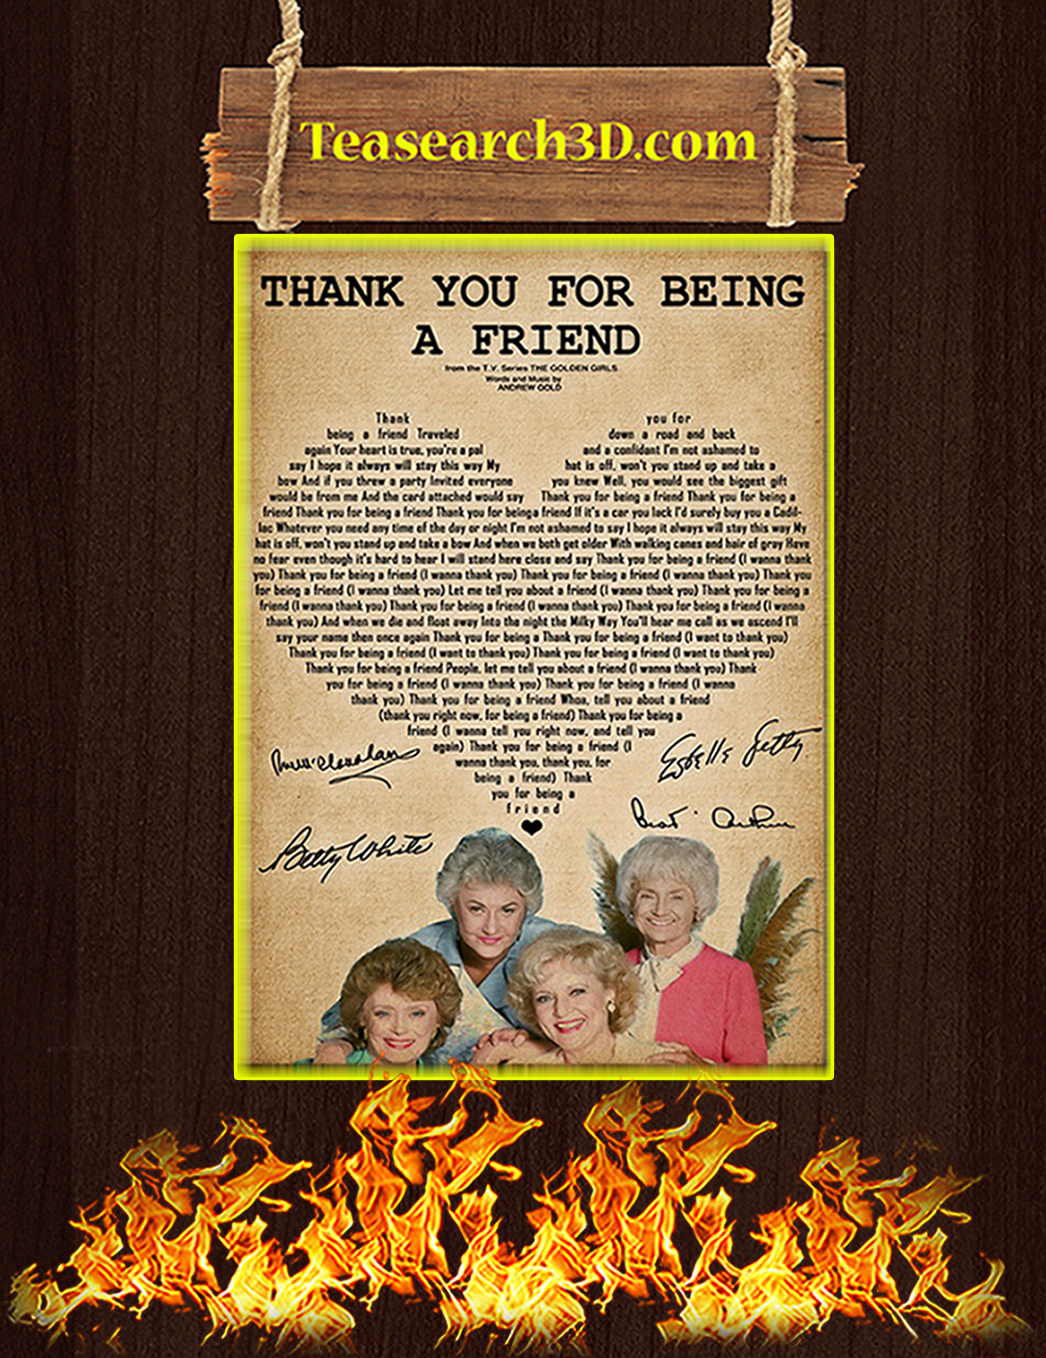 Thank you for being a friend golden girls poster A1